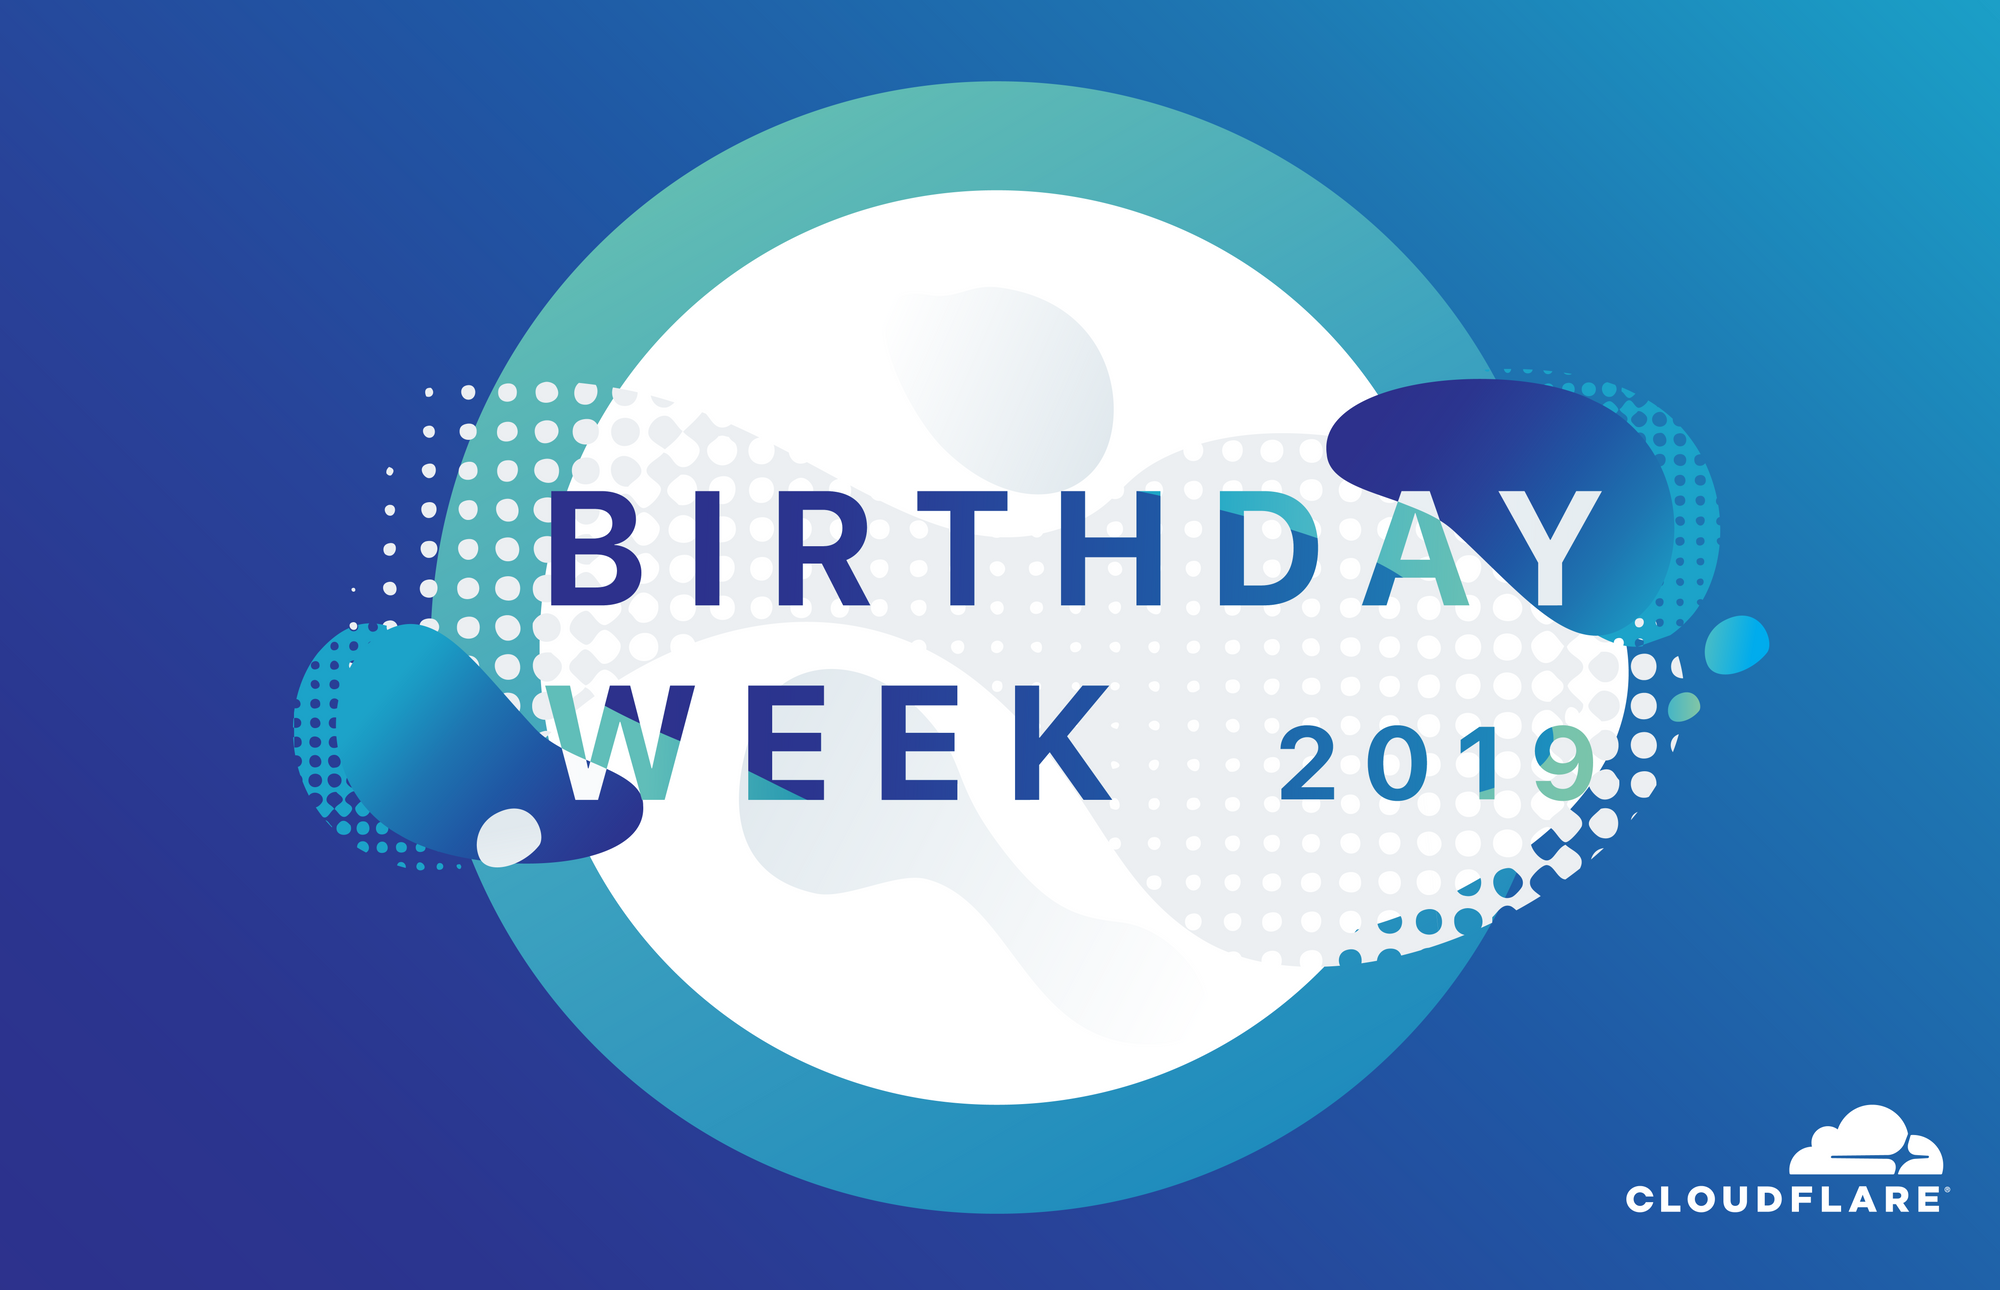 Birthday Week 2019 Wrap-up